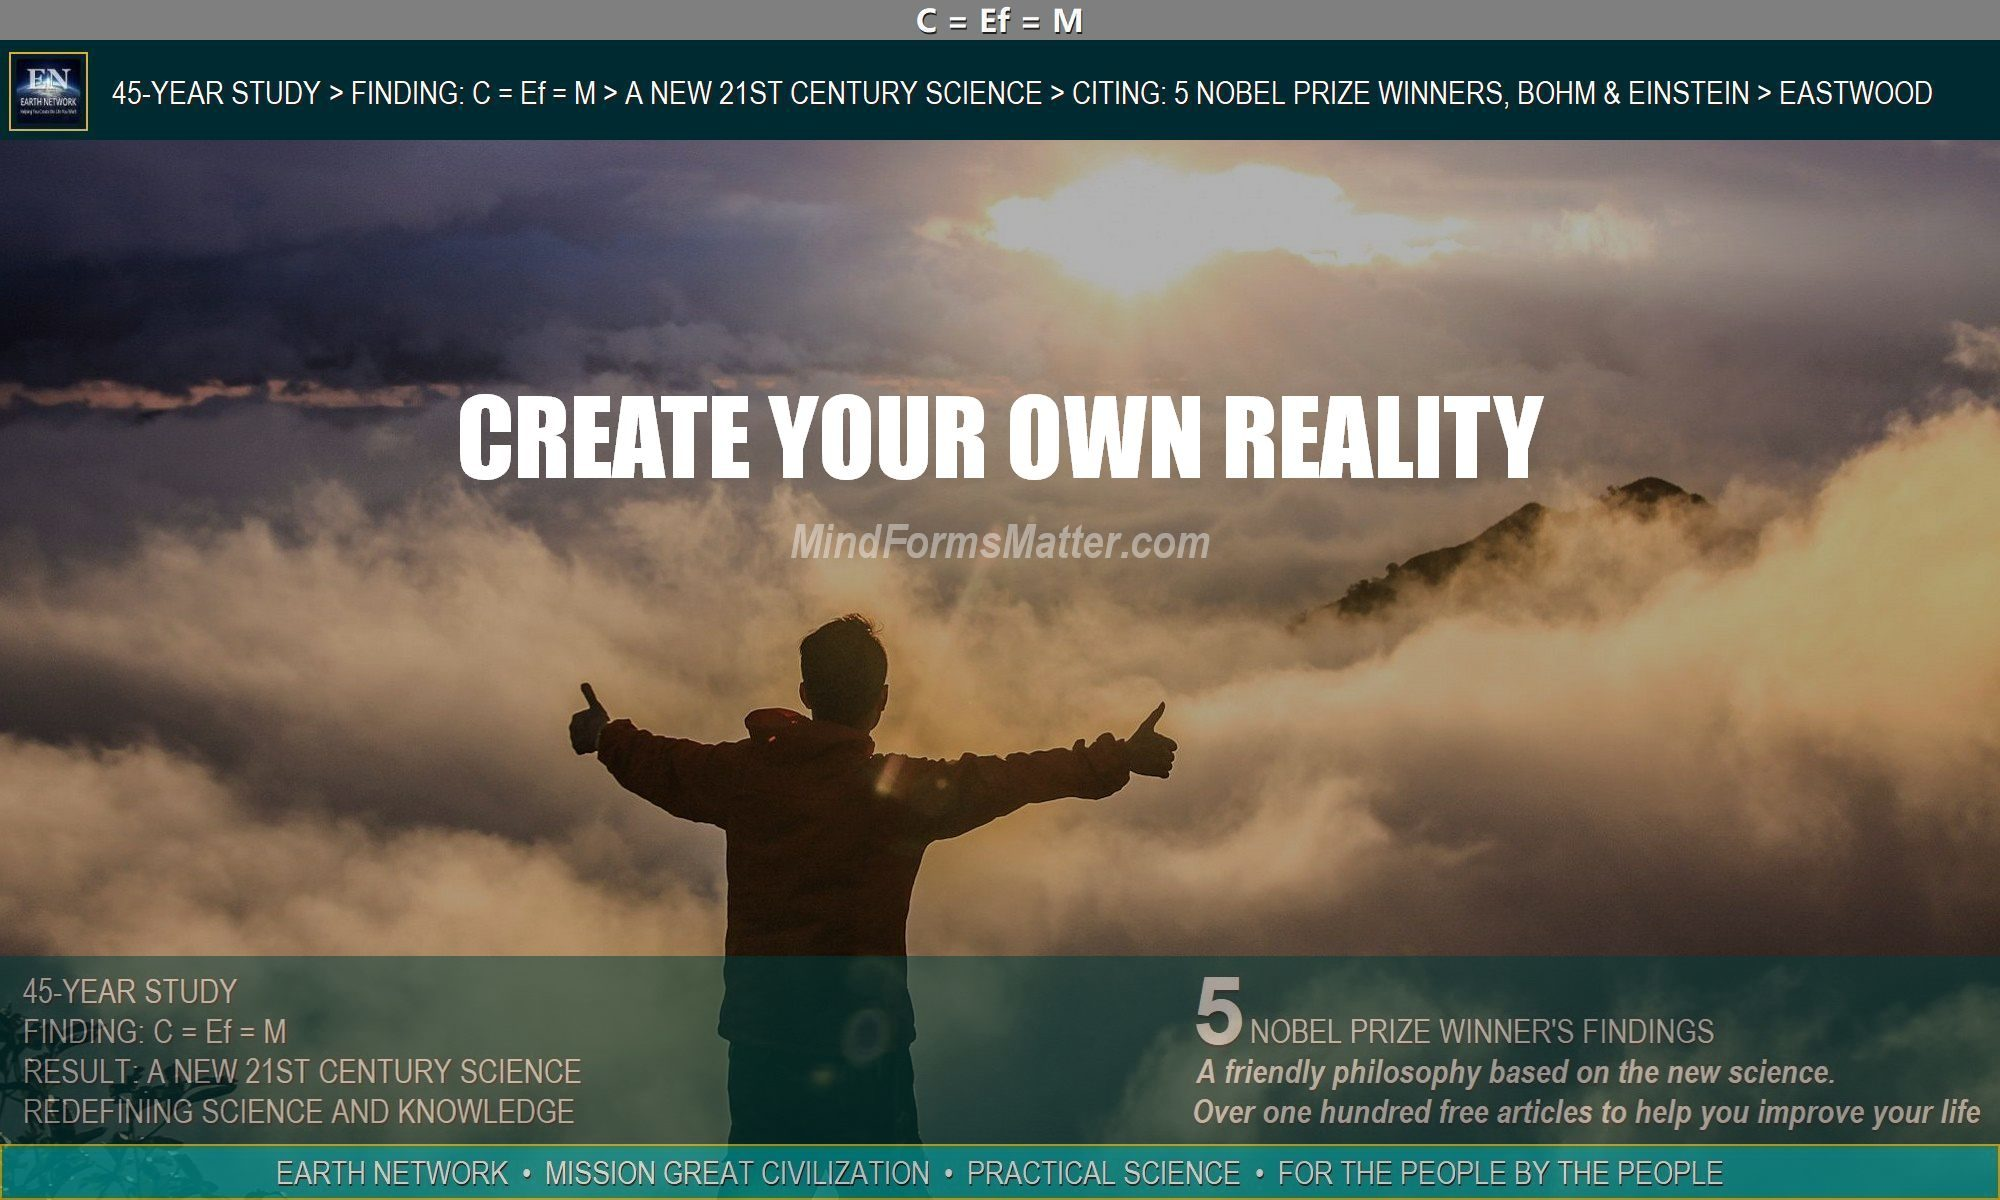 Man on mountain looking at sunrise tells us you can create your own reality and how to do it.